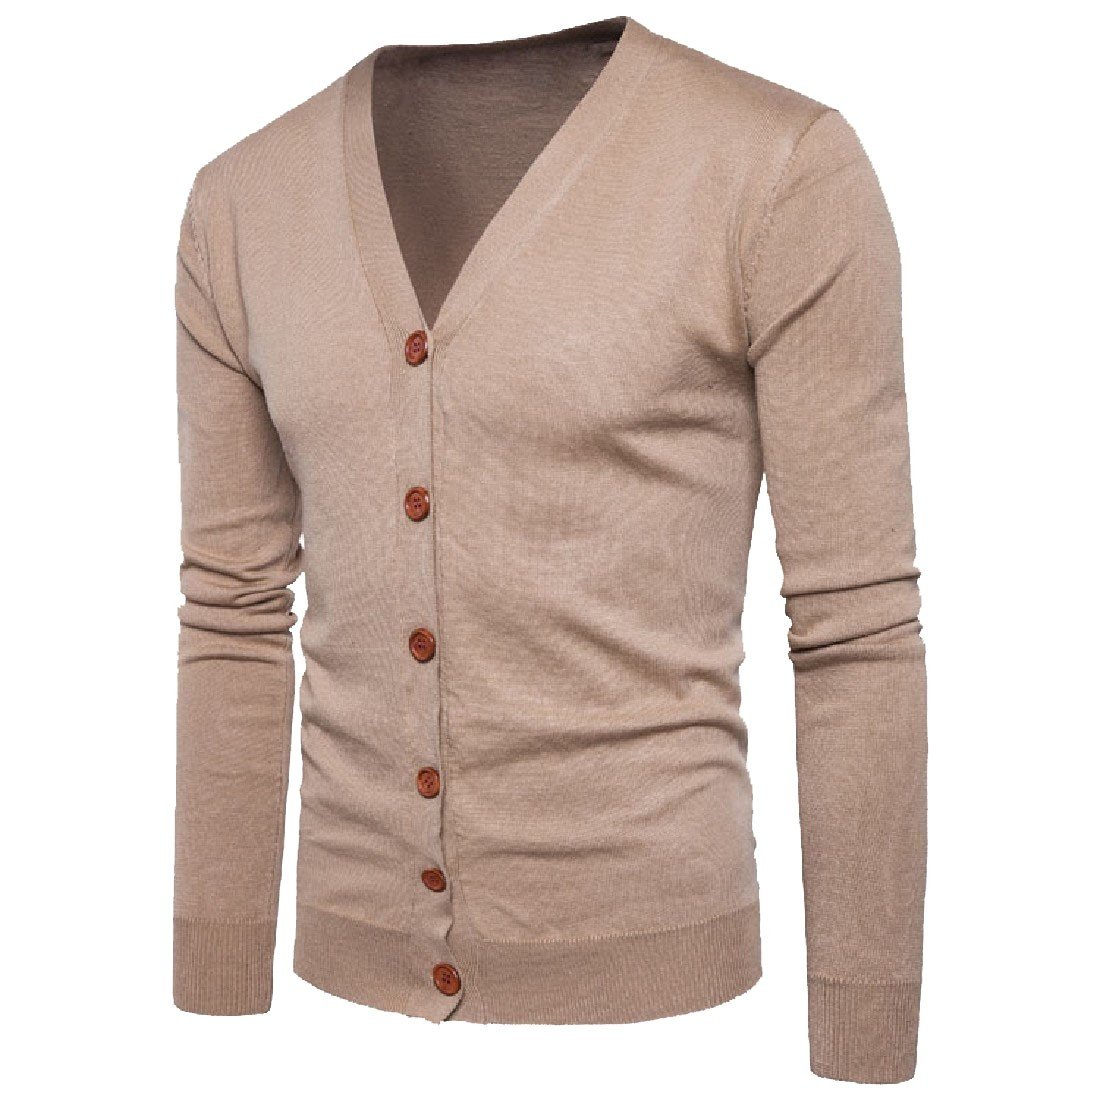 Winwinus Mens Sweater All-Match Knitted Versatile Pure Colour Cardigan